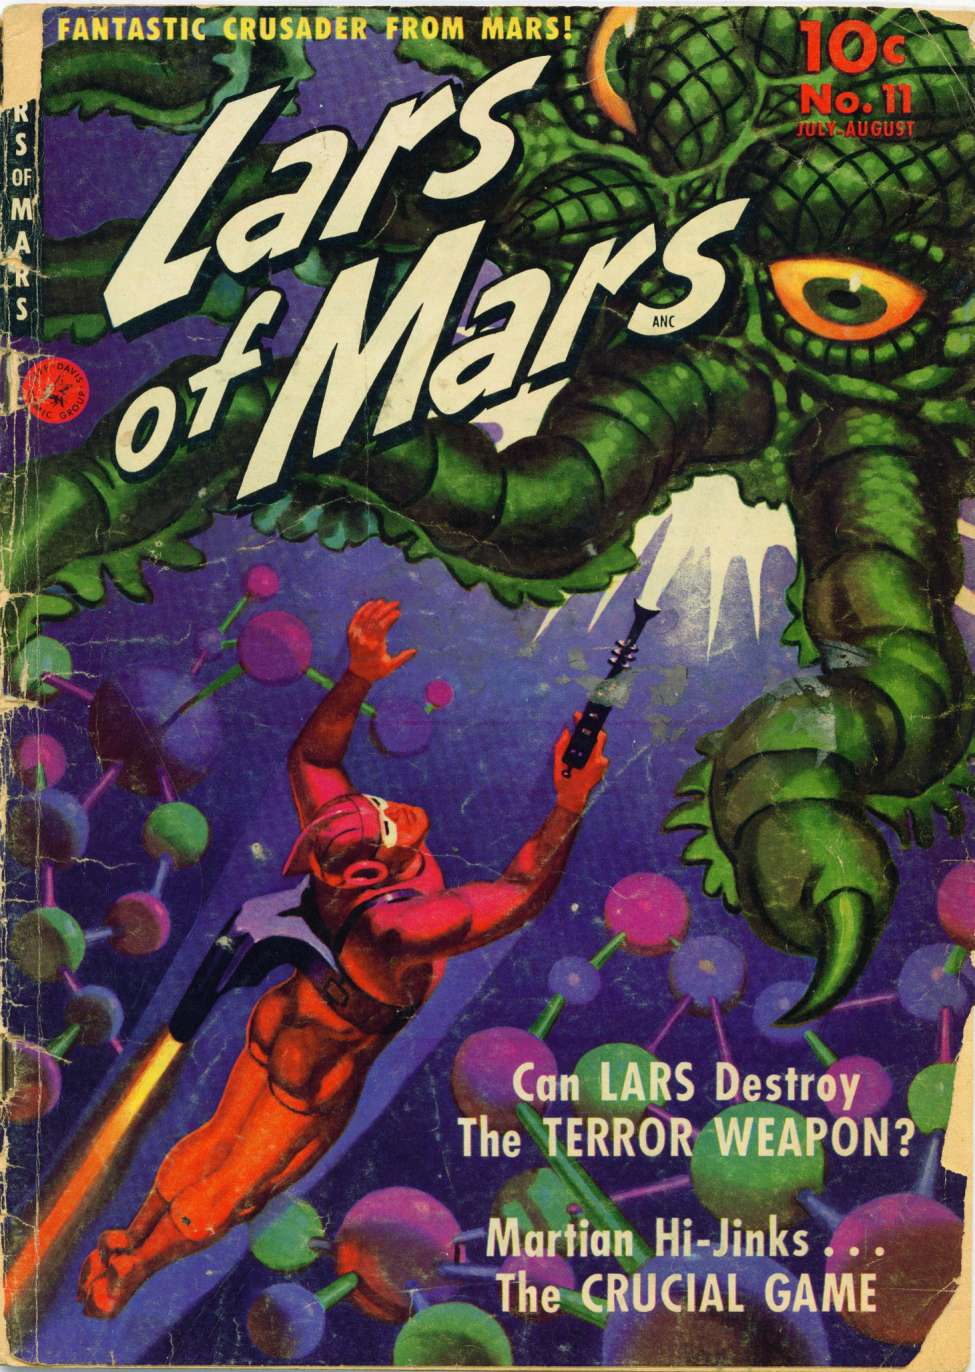 Comic Book Cover For Lars of Mars #11